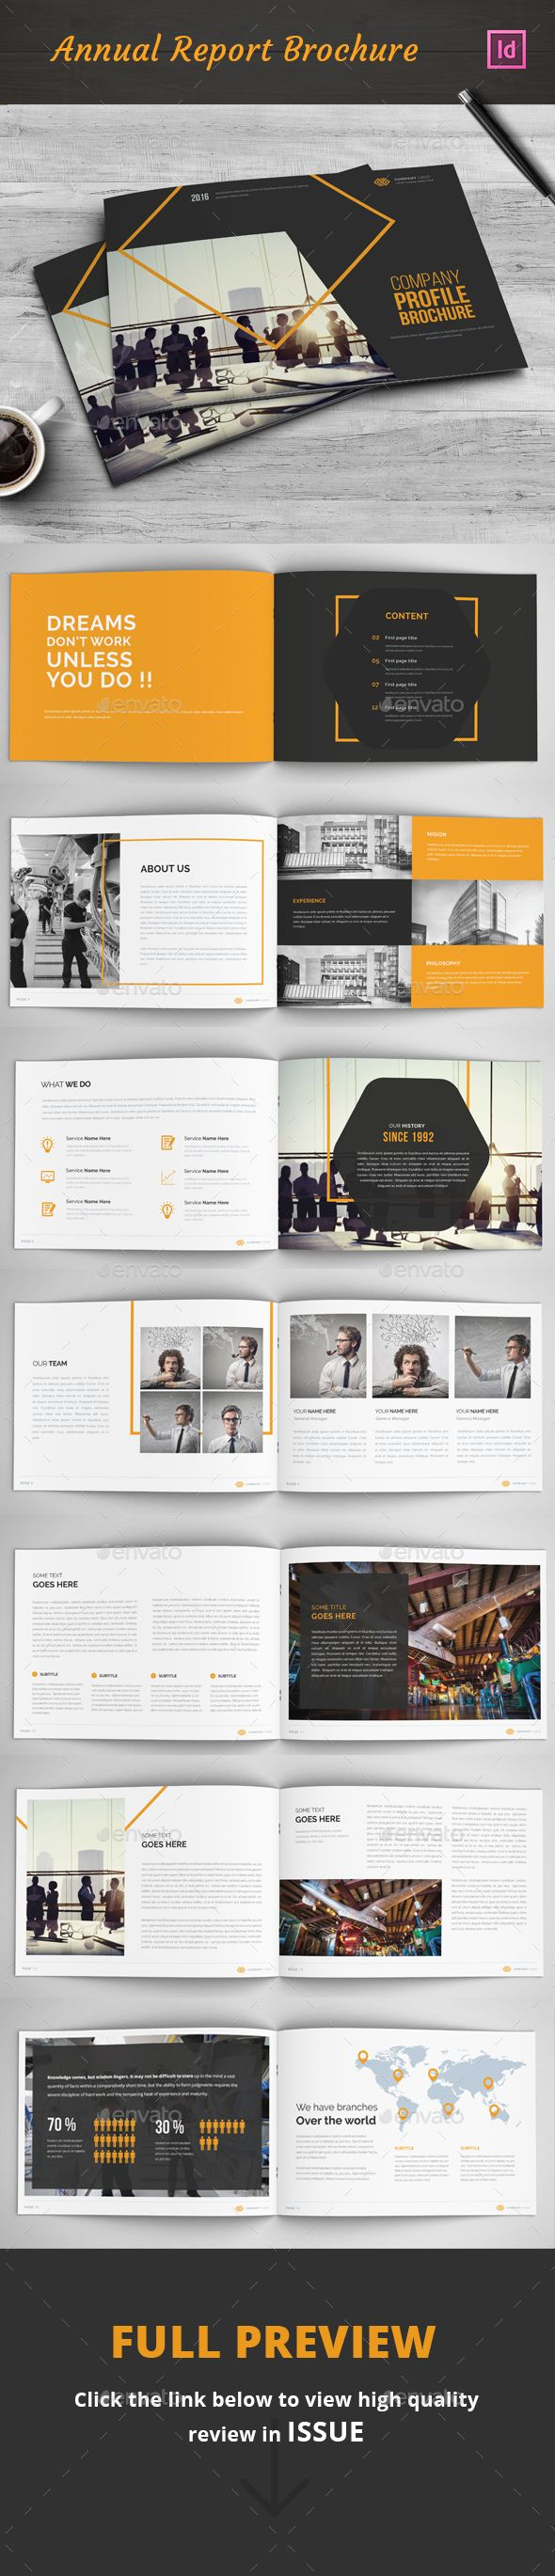 Company Profile Brochure Template InDesign INDD. Download here: http://graphicriver.net/item/company-profile-brochure/16692317?ref=ksioks